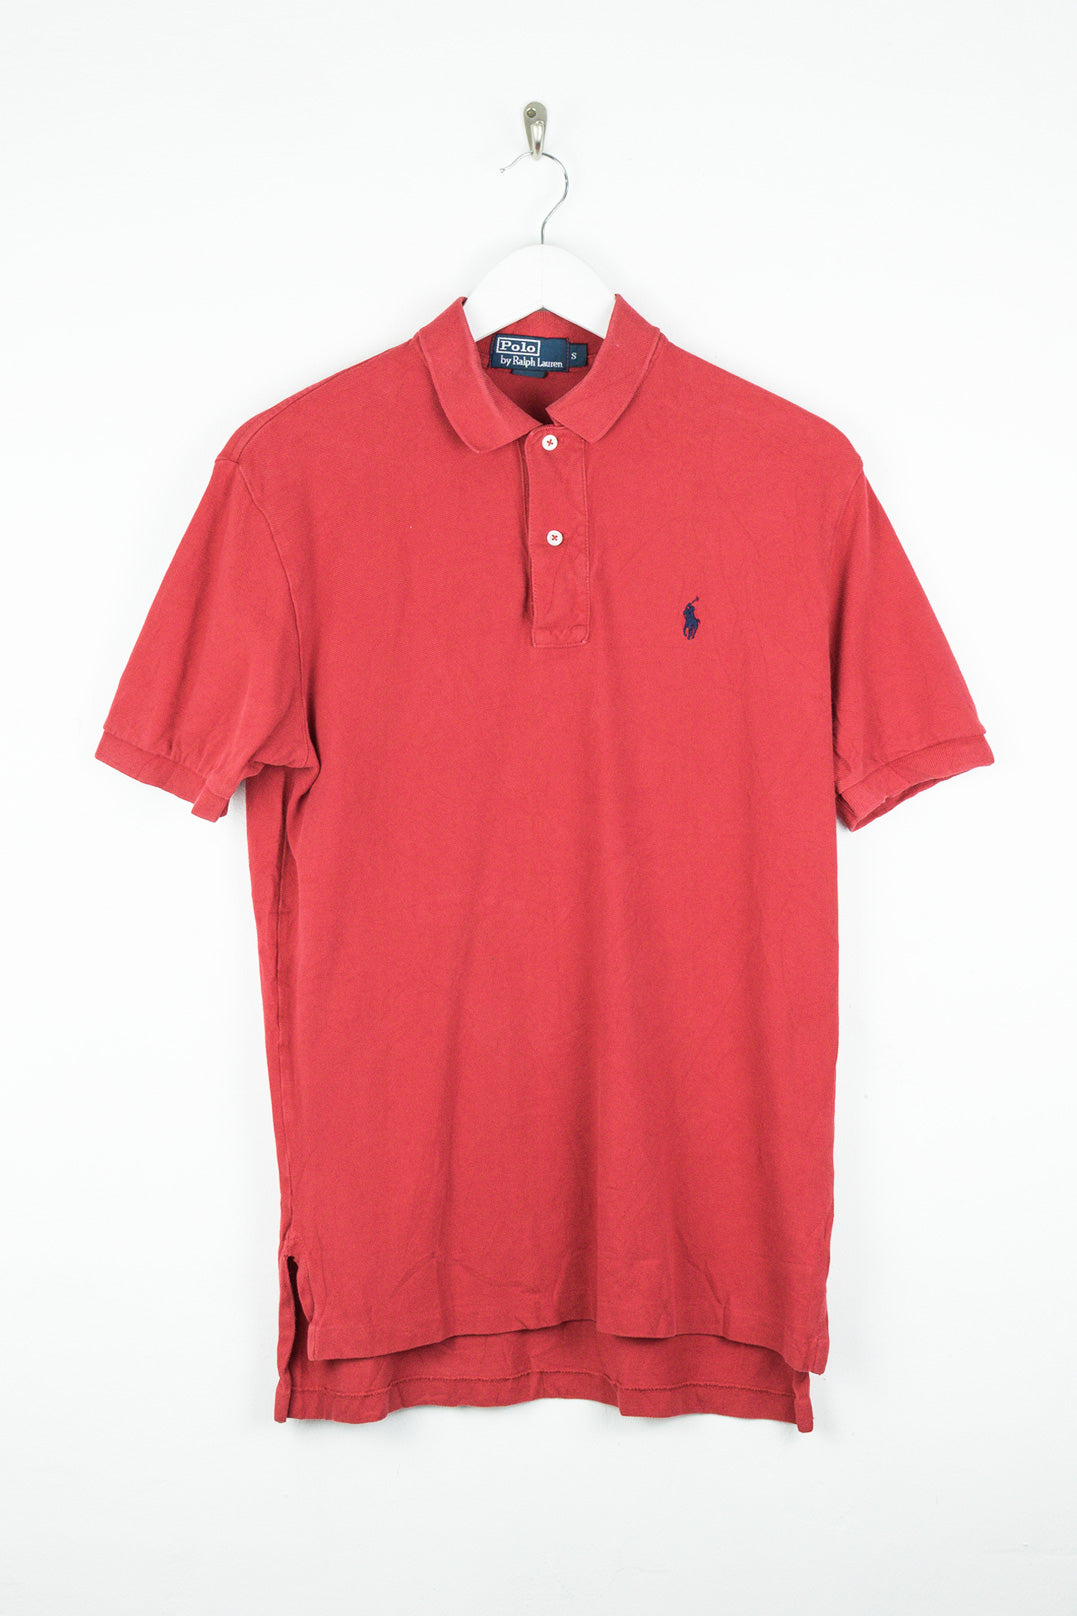 Polo RL red